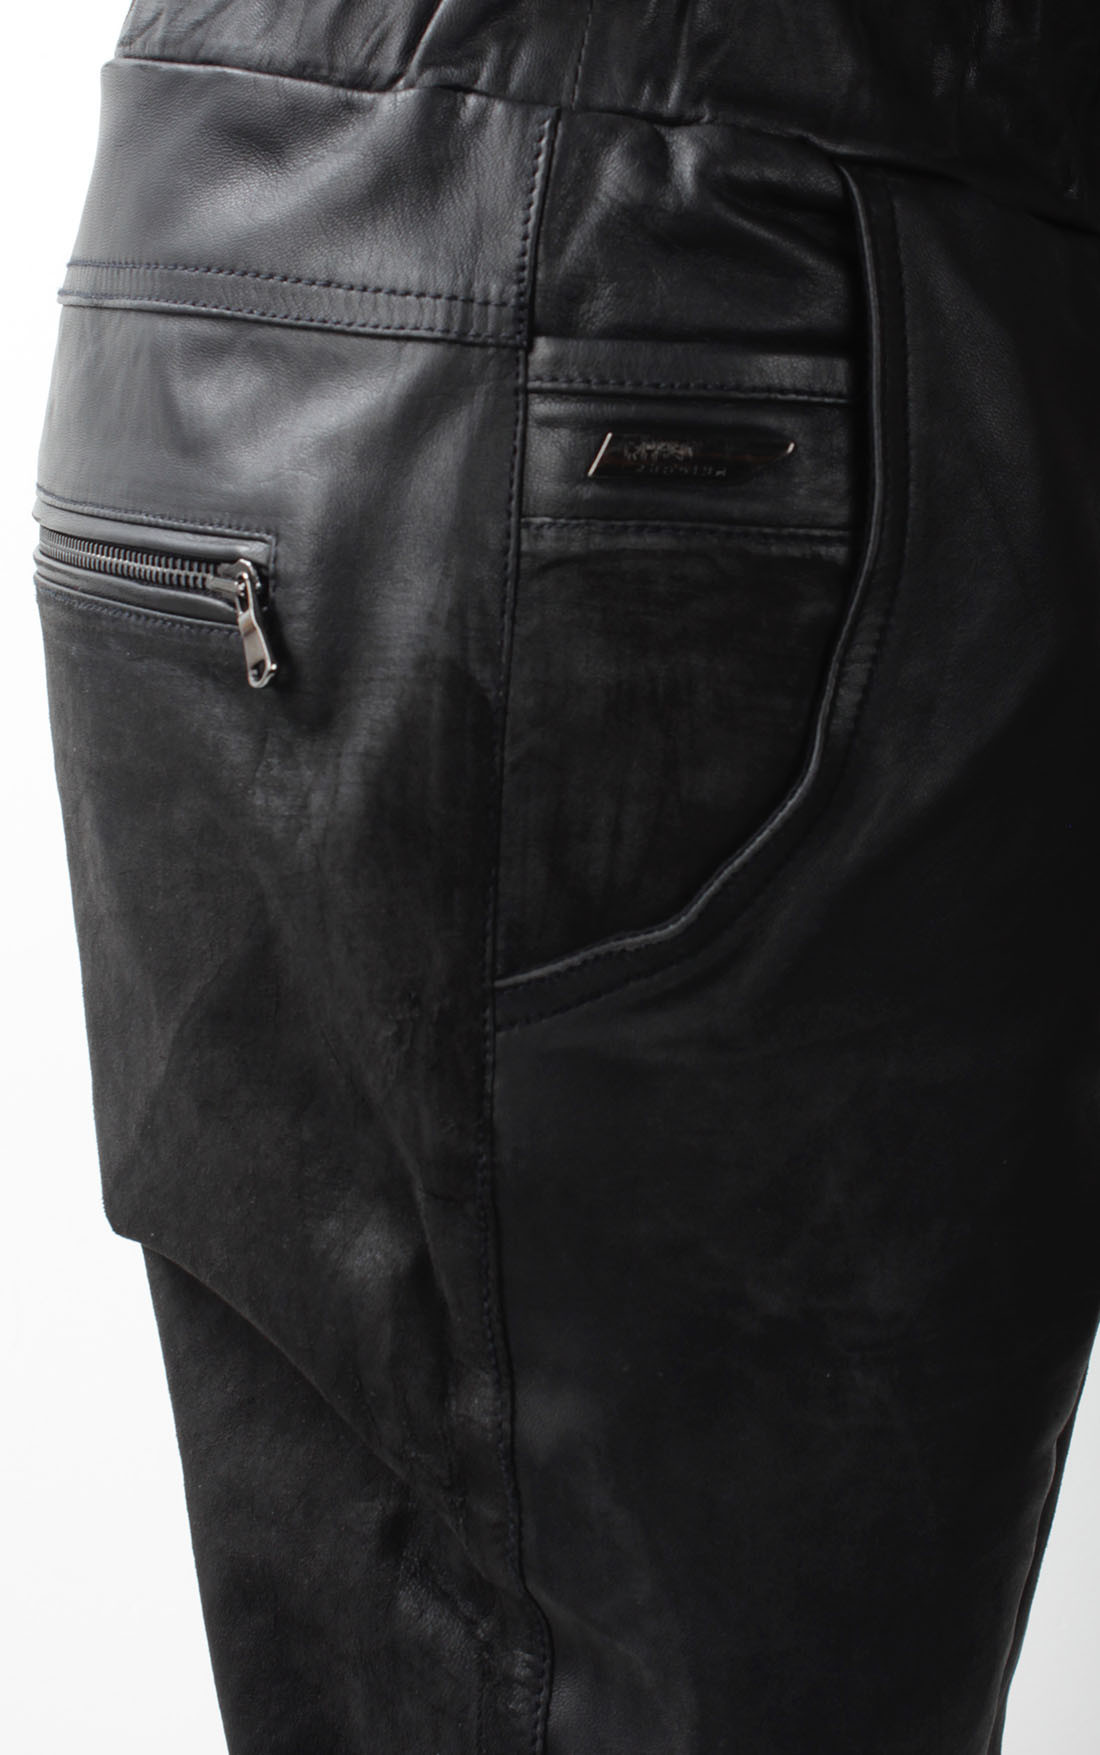 RH45 - Distressed Black Leather Sweatpants (BP26)